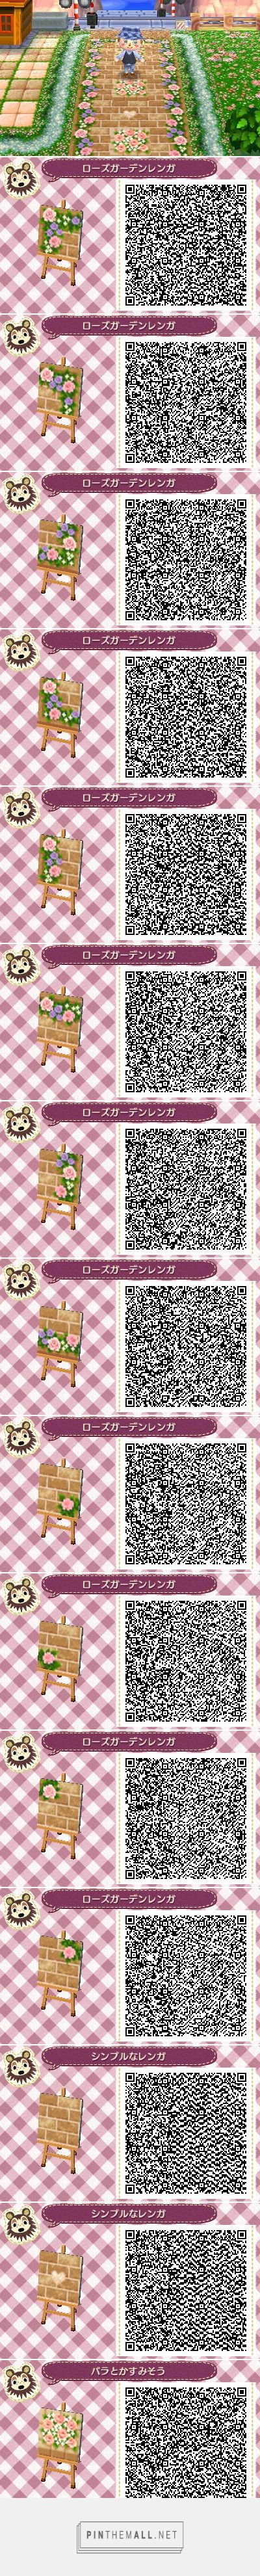 Animal Crossing New Leaf Qr Codes Boden Rosa